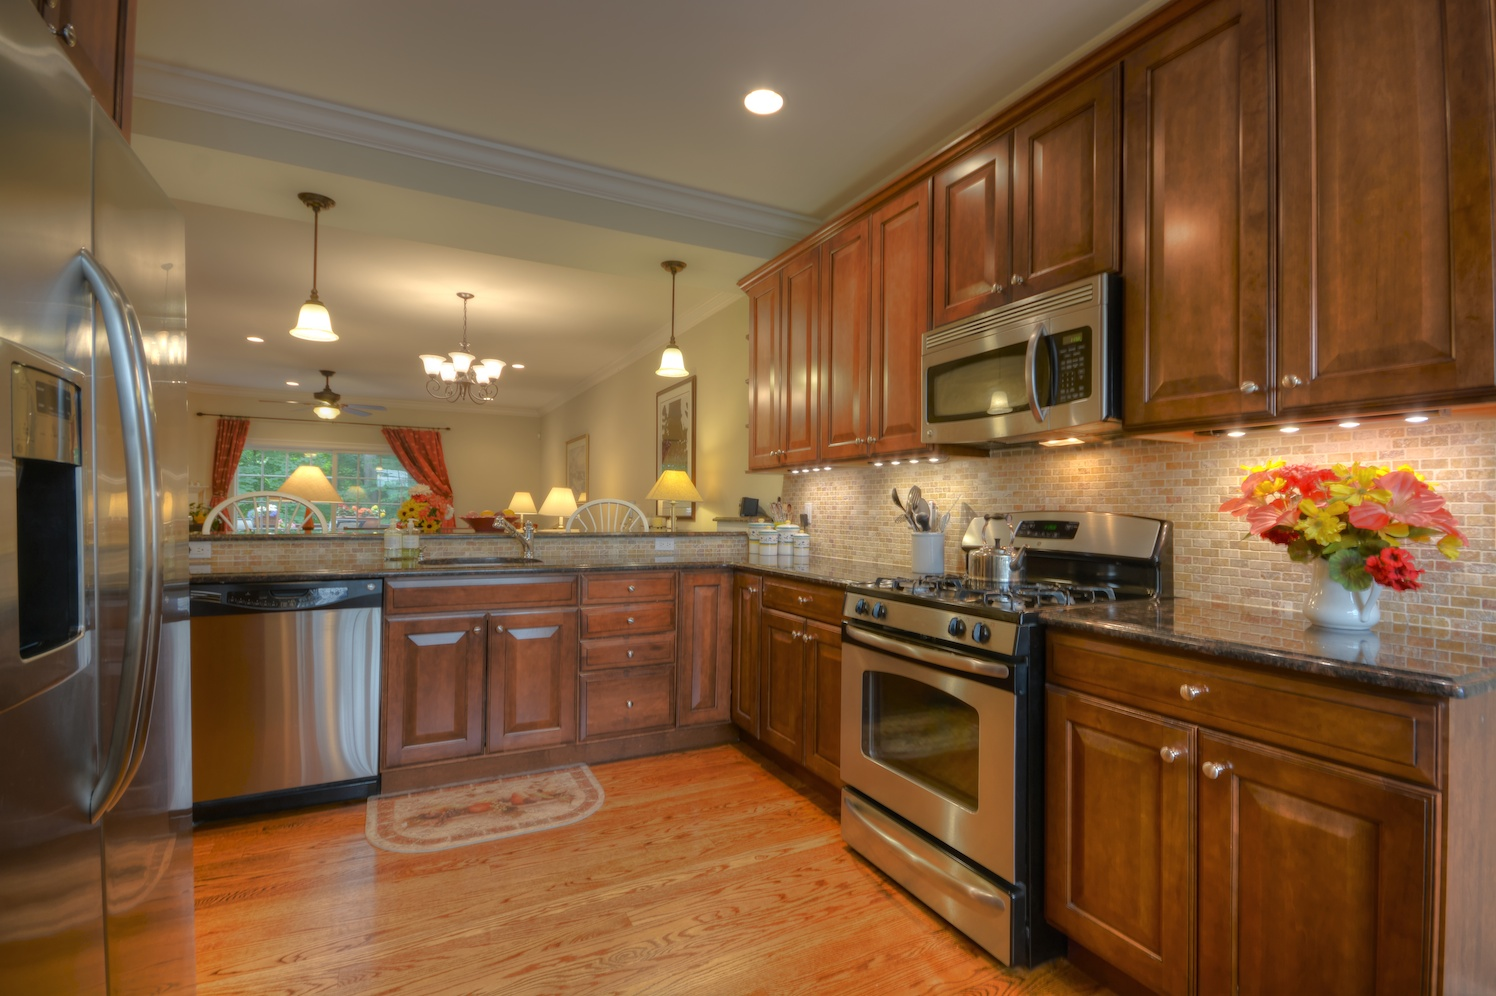 Kitchen Cabinets Westchester Ny Almost New Townhouse For Sale In Country Villas At